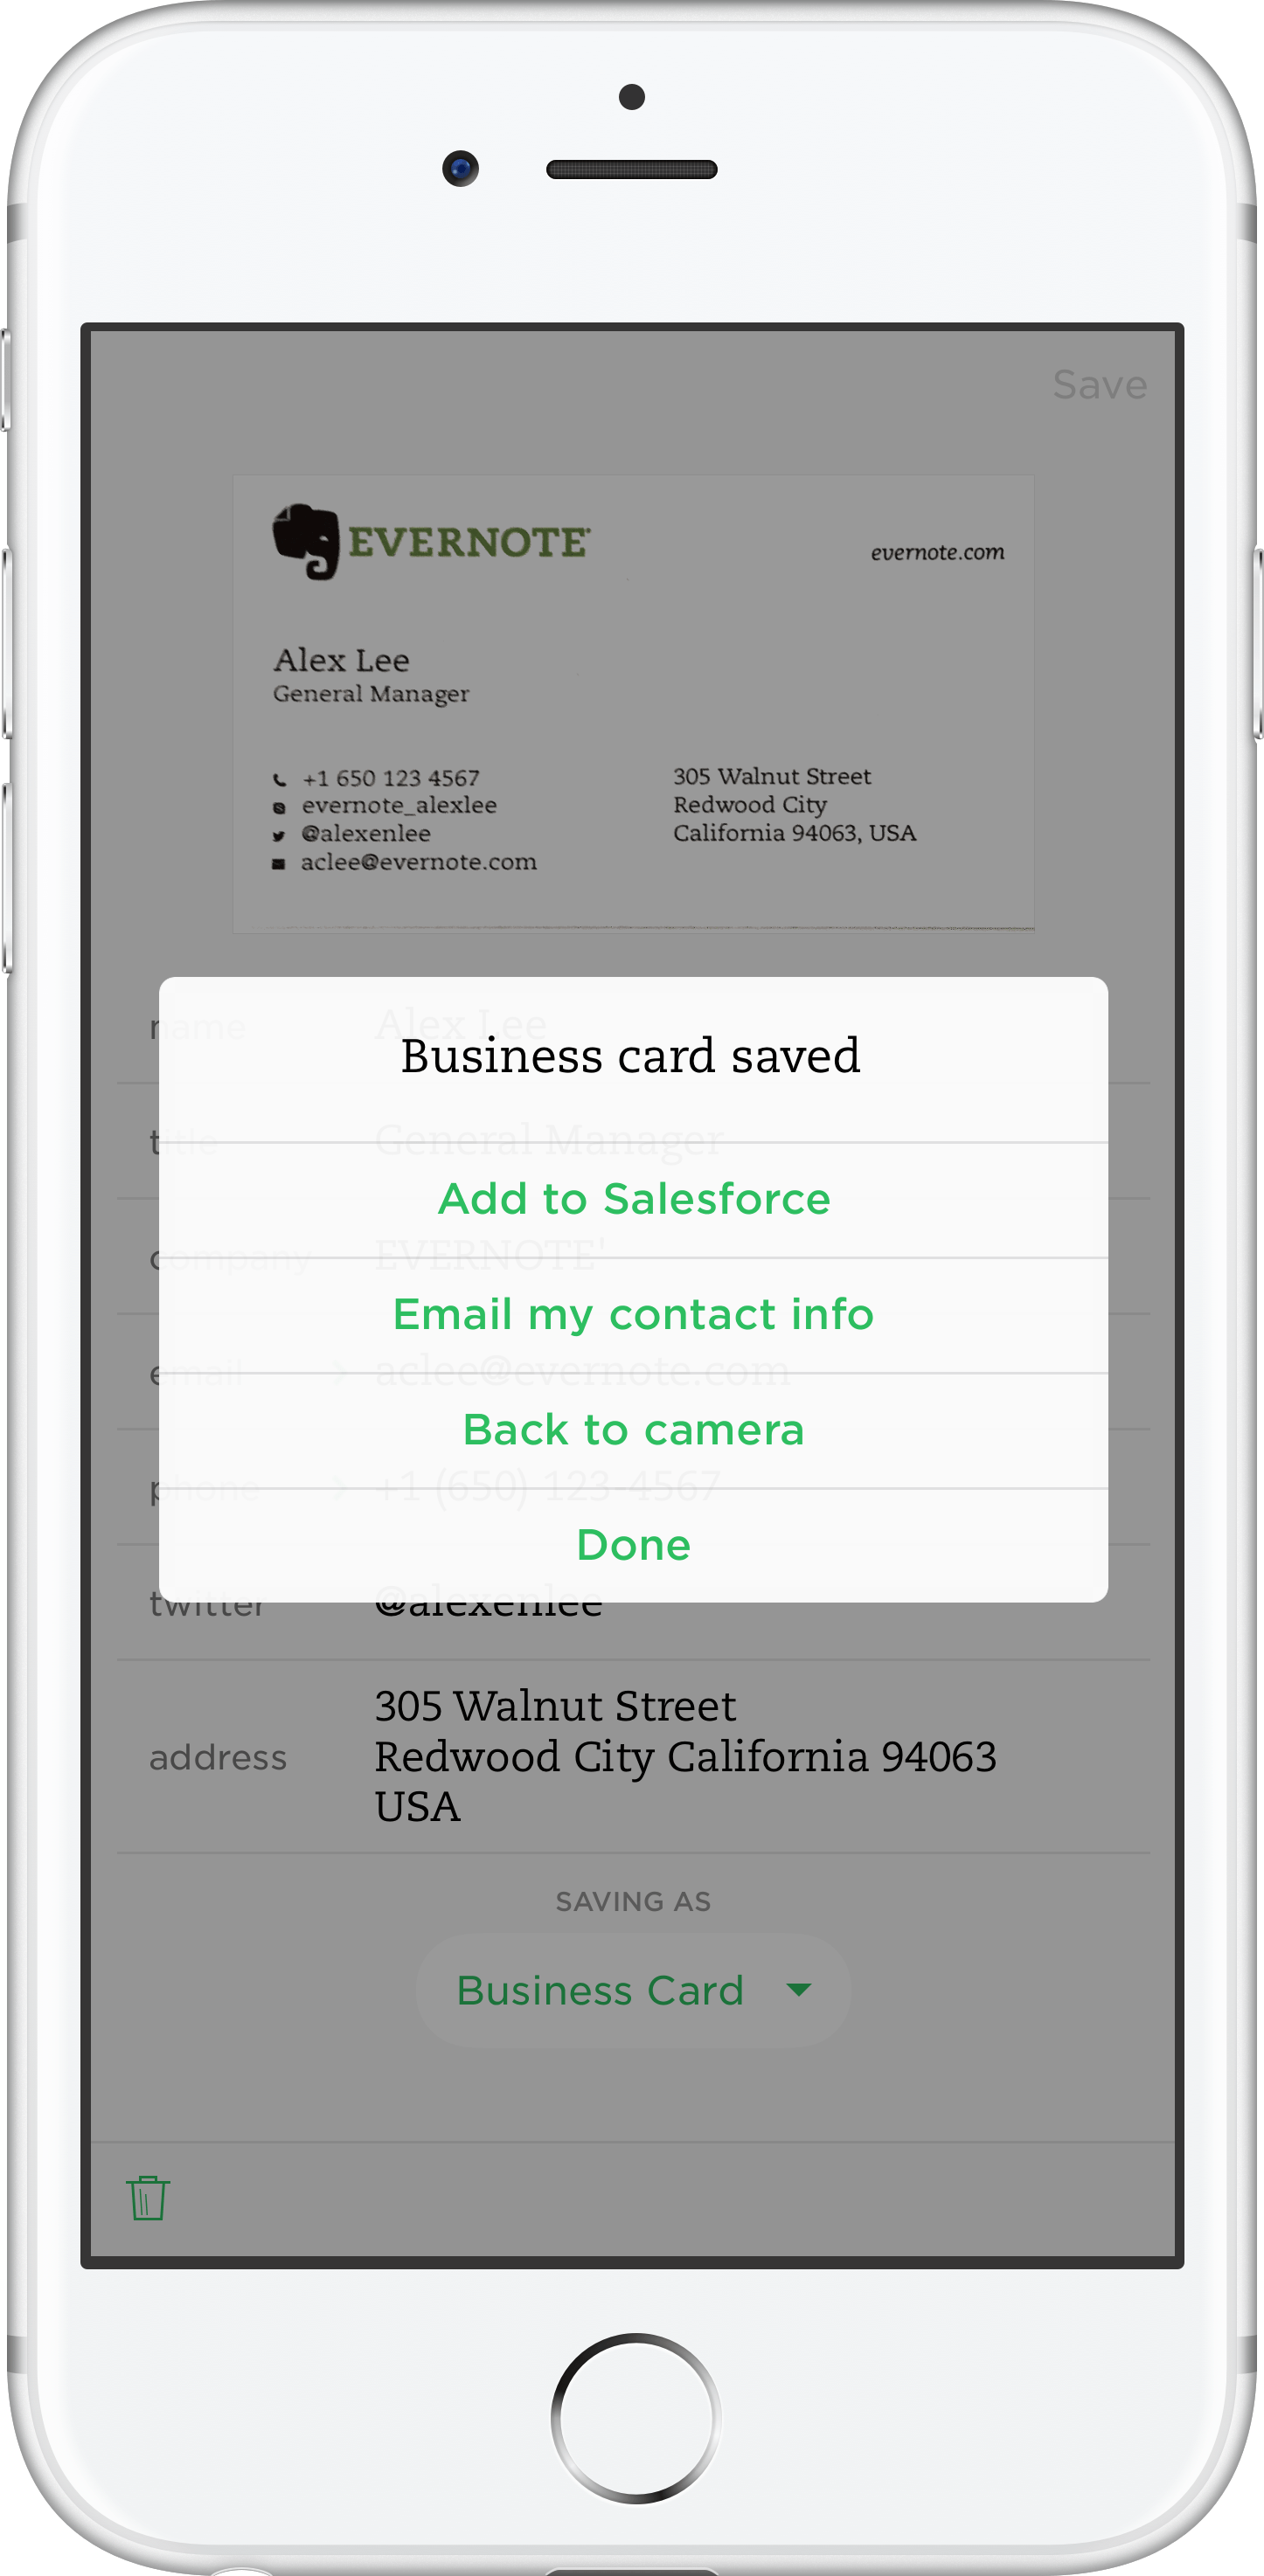 Save Business Cards Scanned with Evernote in Salesforce